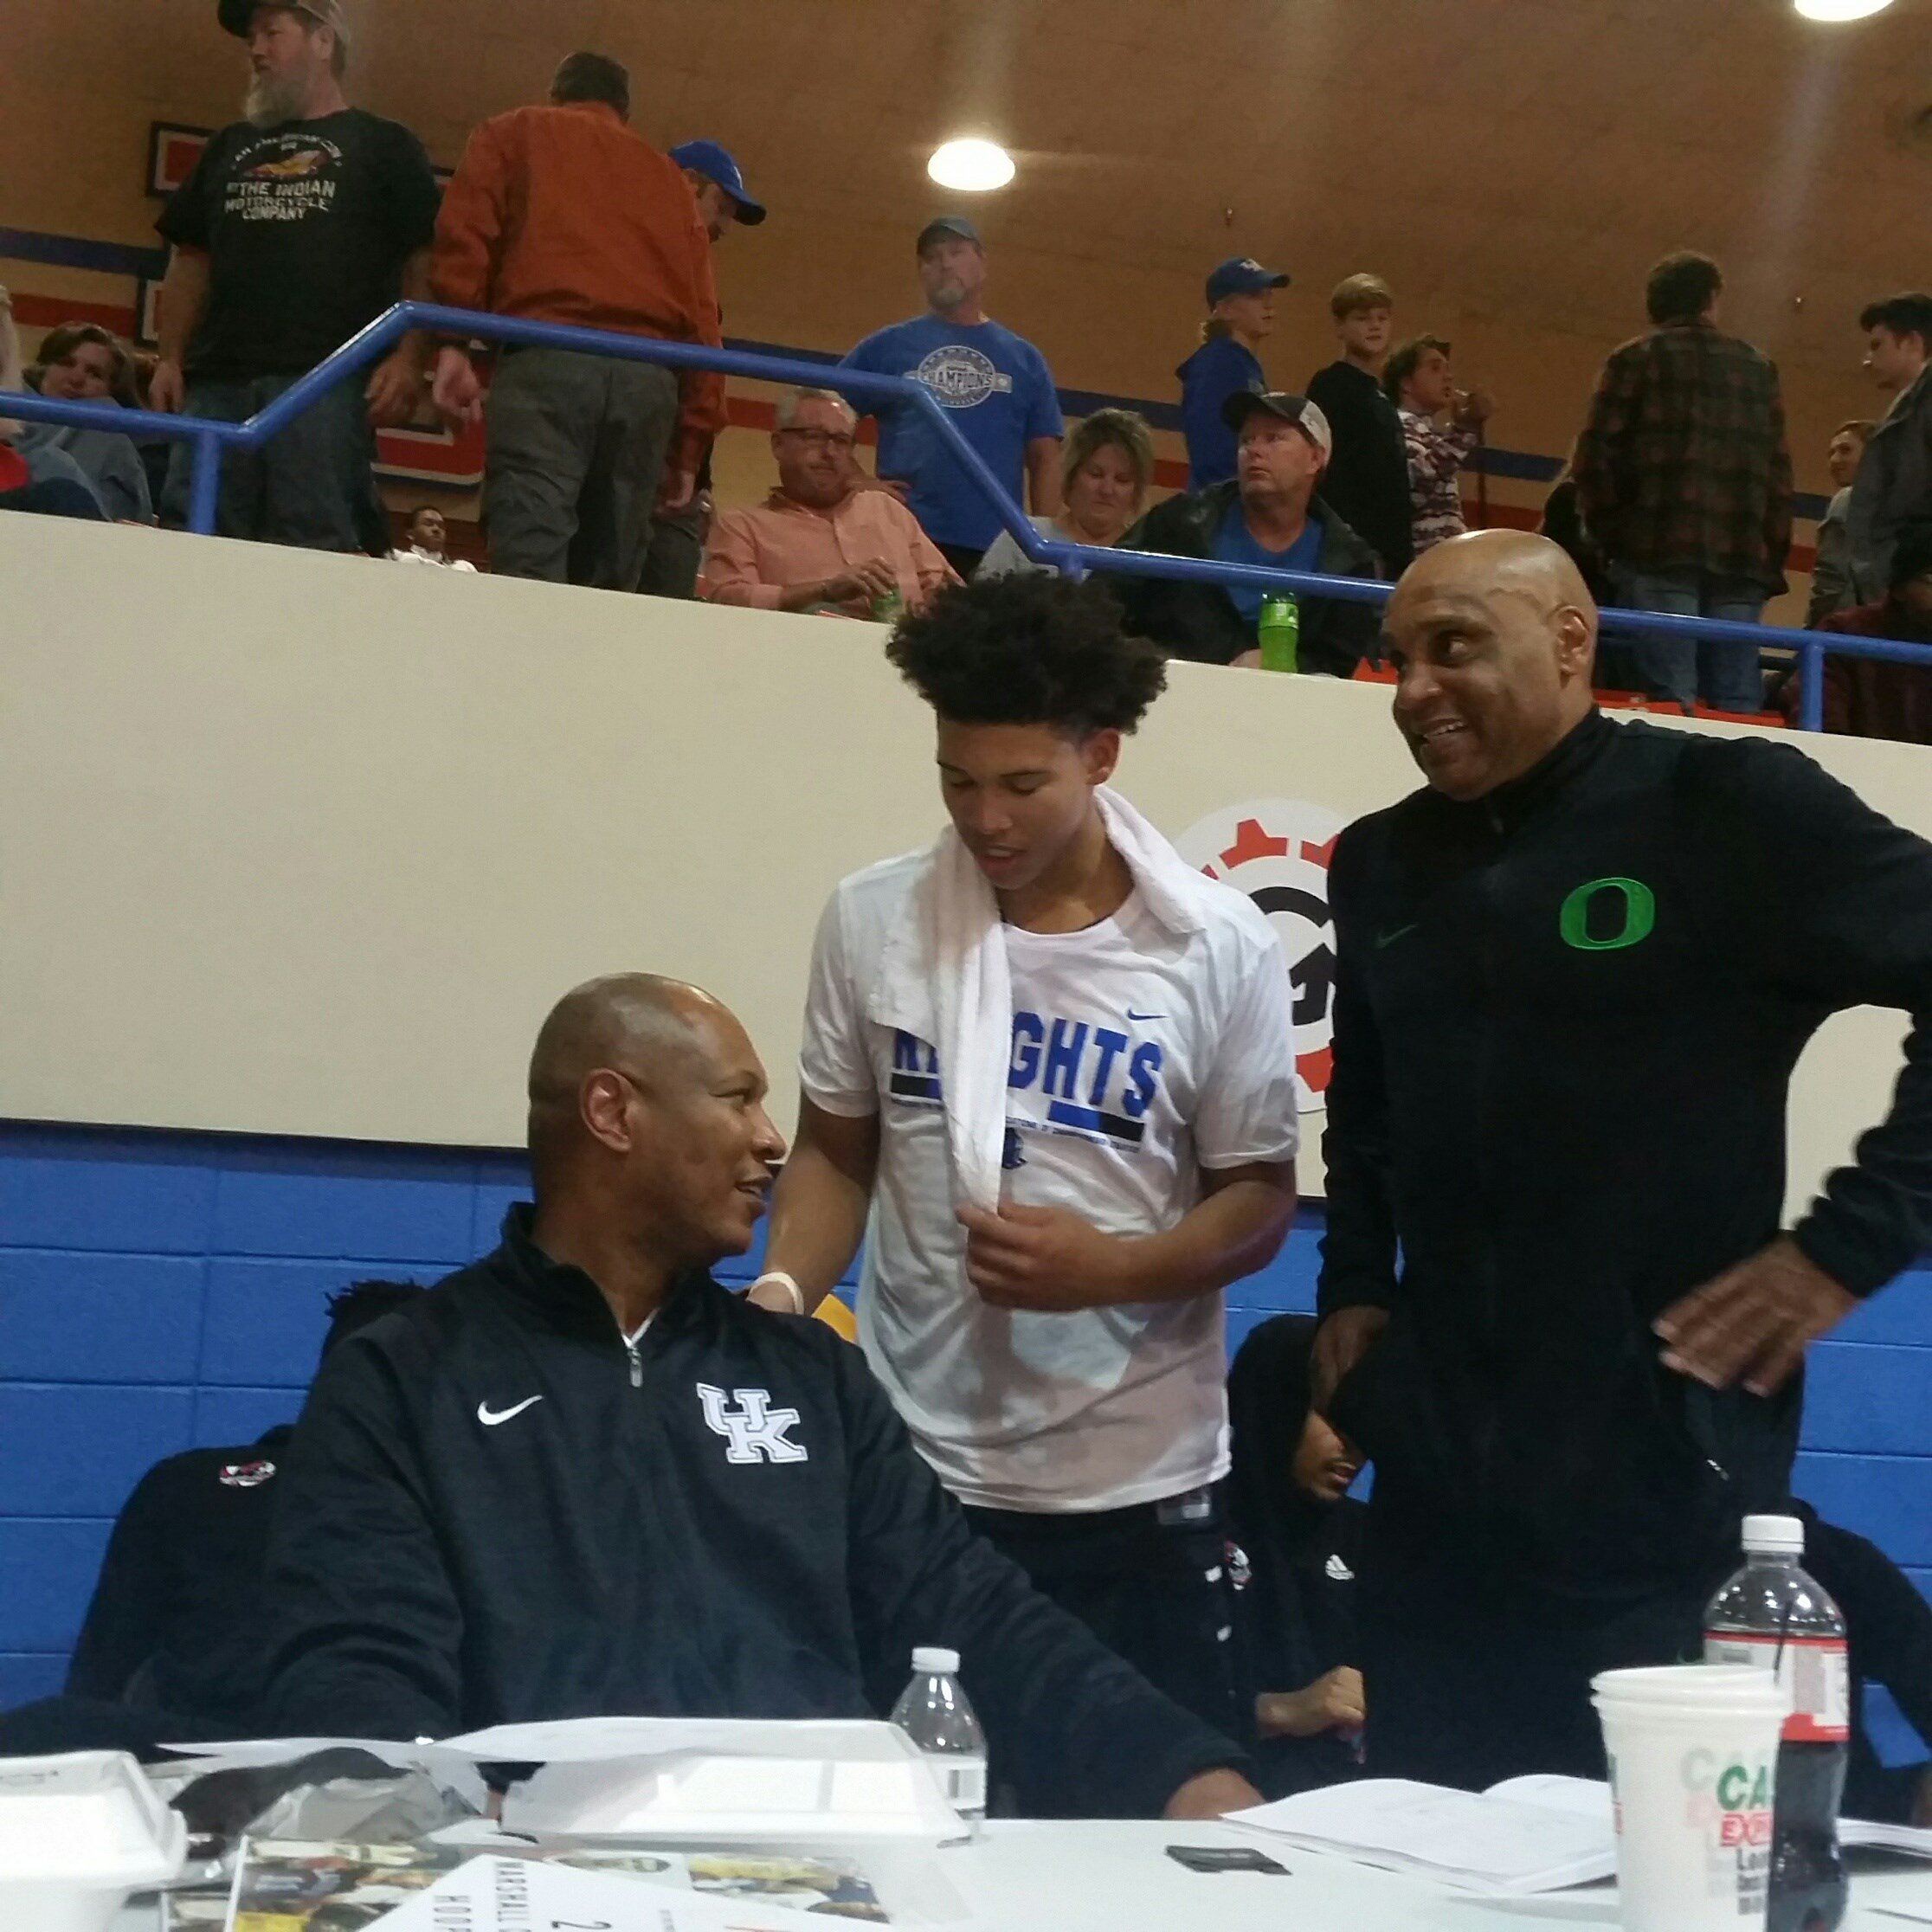 Zan Payne talks with his father, Kenny Payne, after his game at the Marshall County Hoopfest last week. (Larry Vaught Photo)